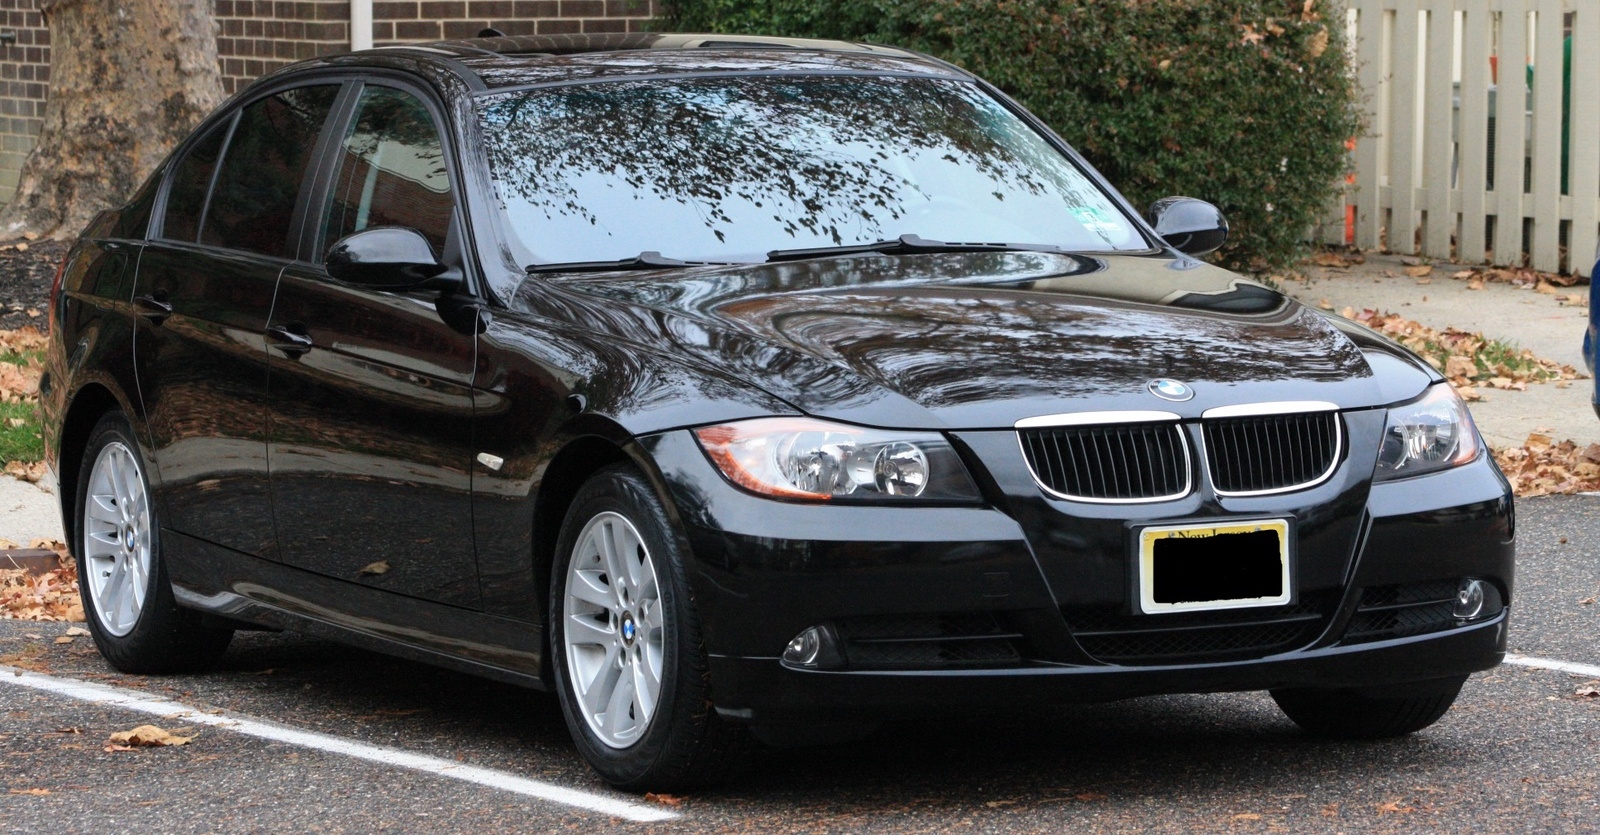 Black 2007 Used BMW 3-Series in a driveway